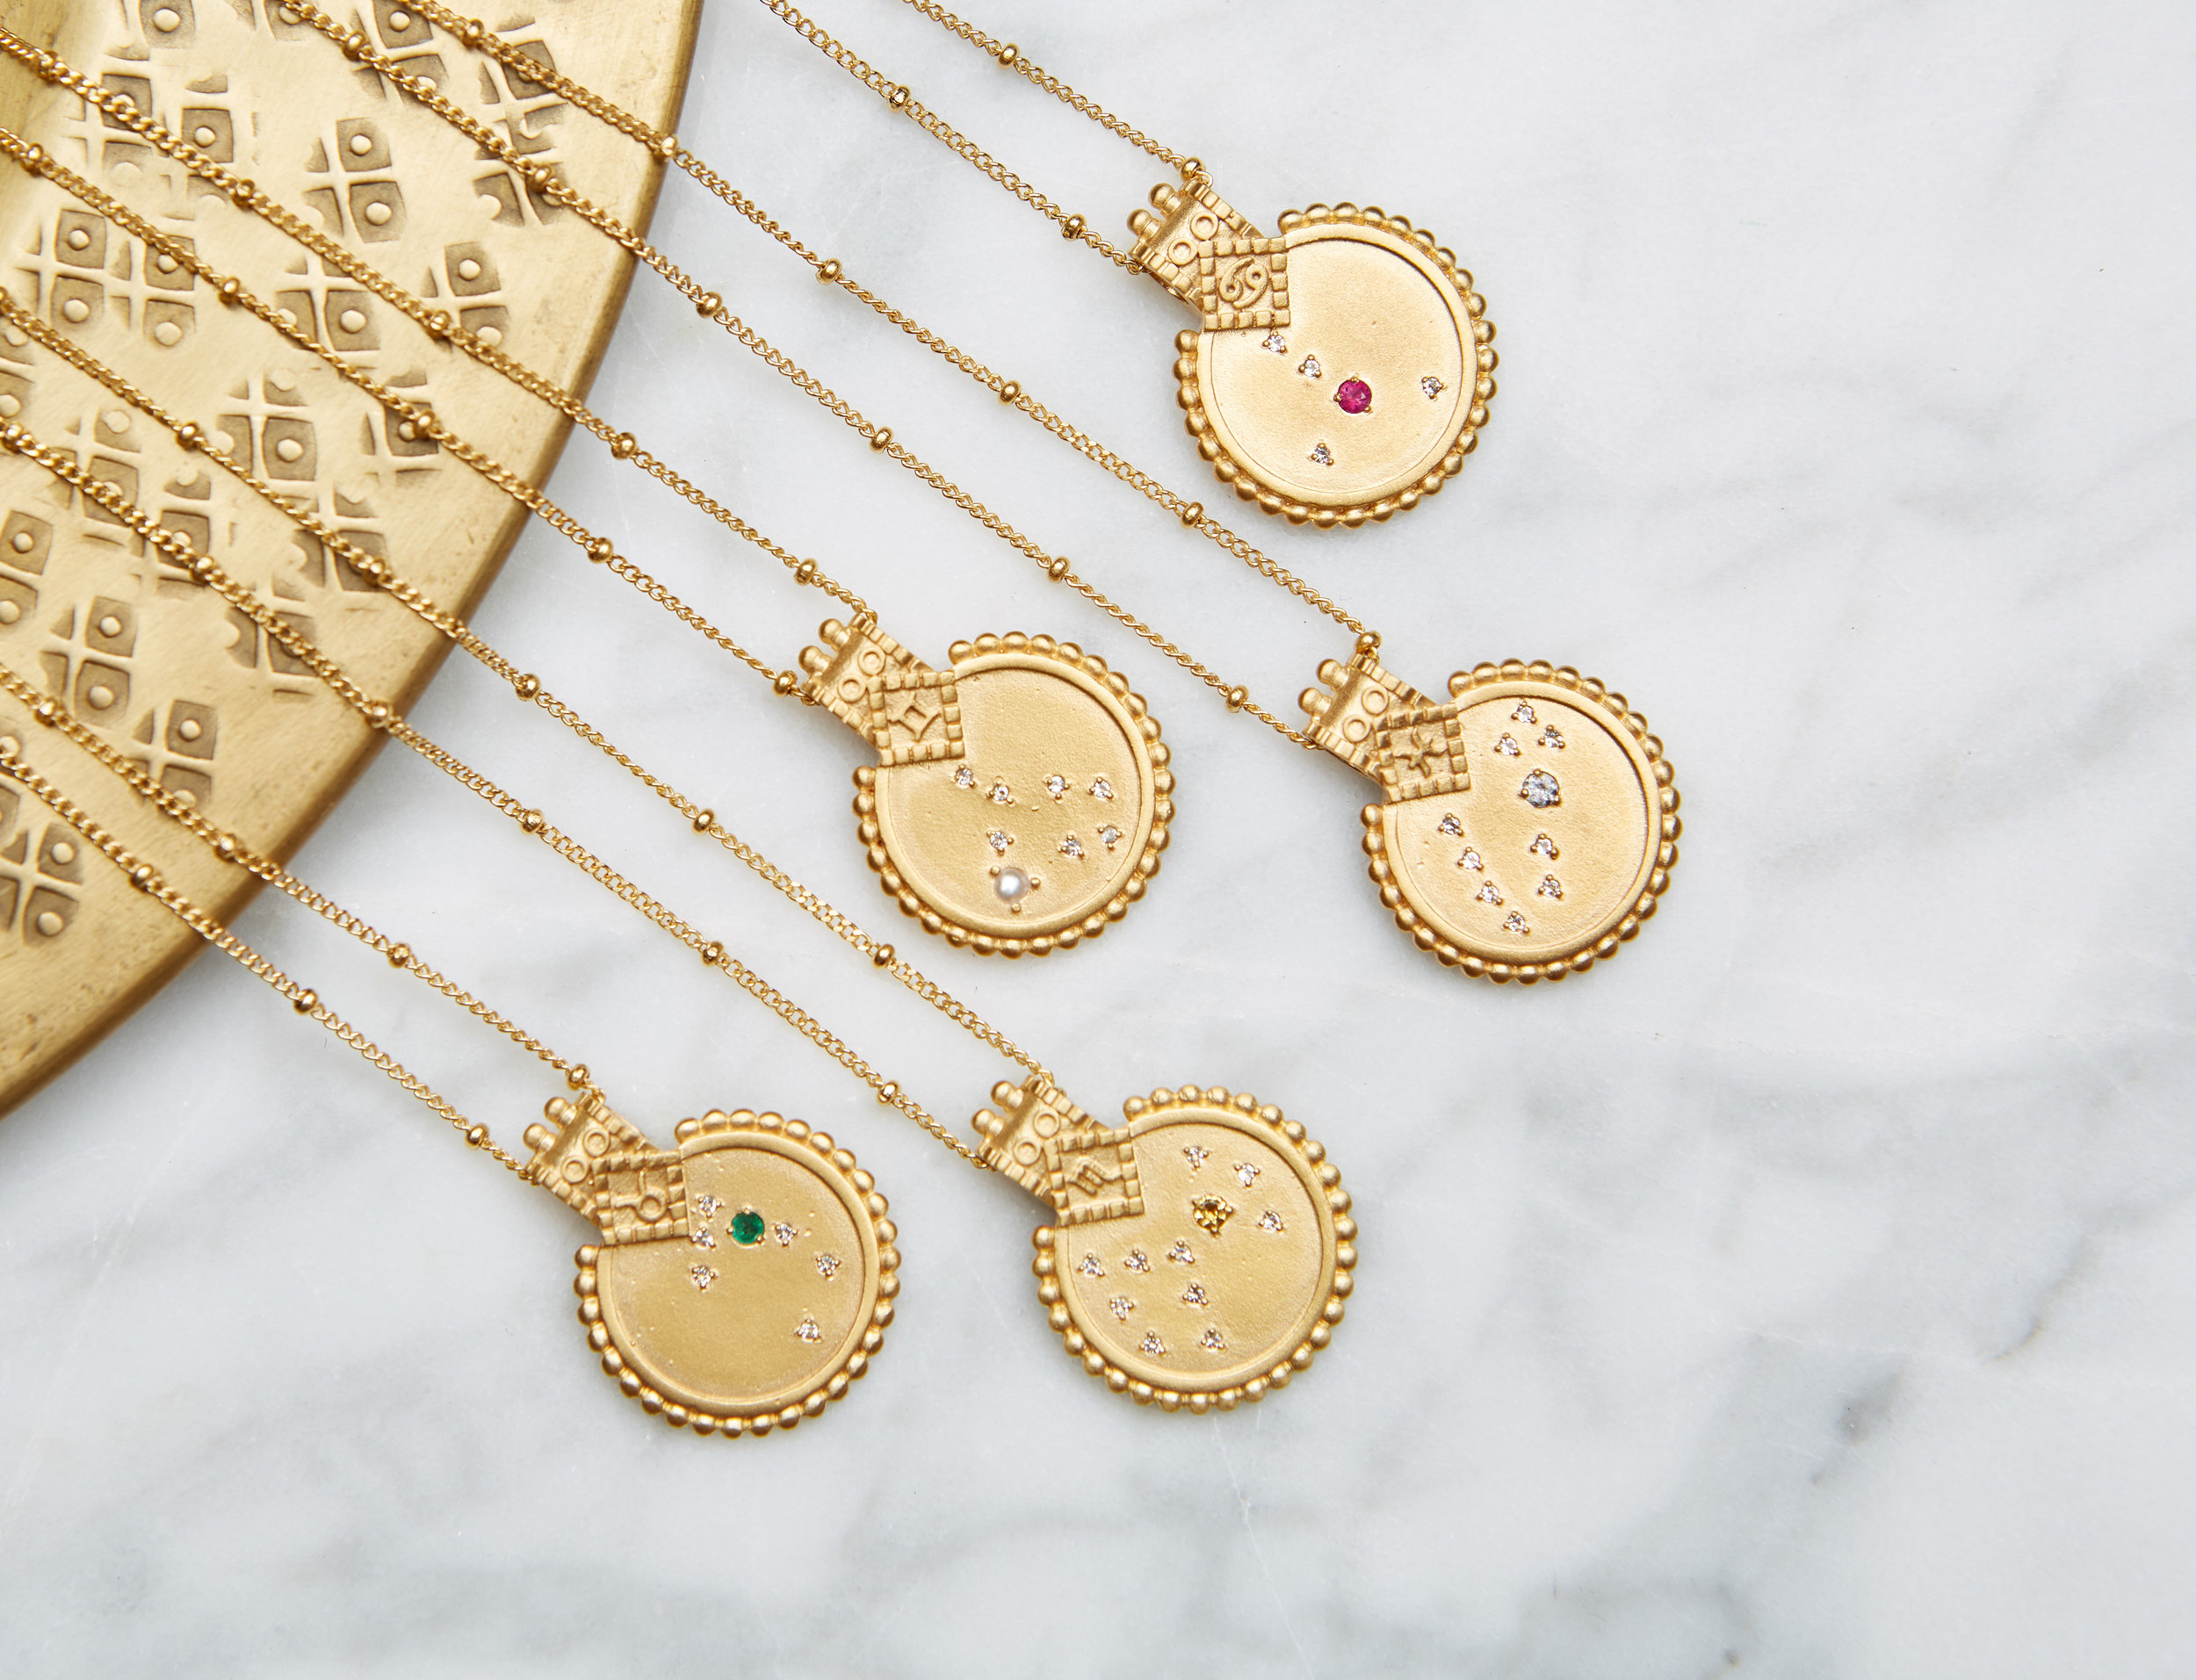 Pieces from the Satya Mandala Zodiac Collection. Each piece is beautiful and personal and perfect for Mother's Day which is right around the corner! They're available now on the Satya website, so go take a look!